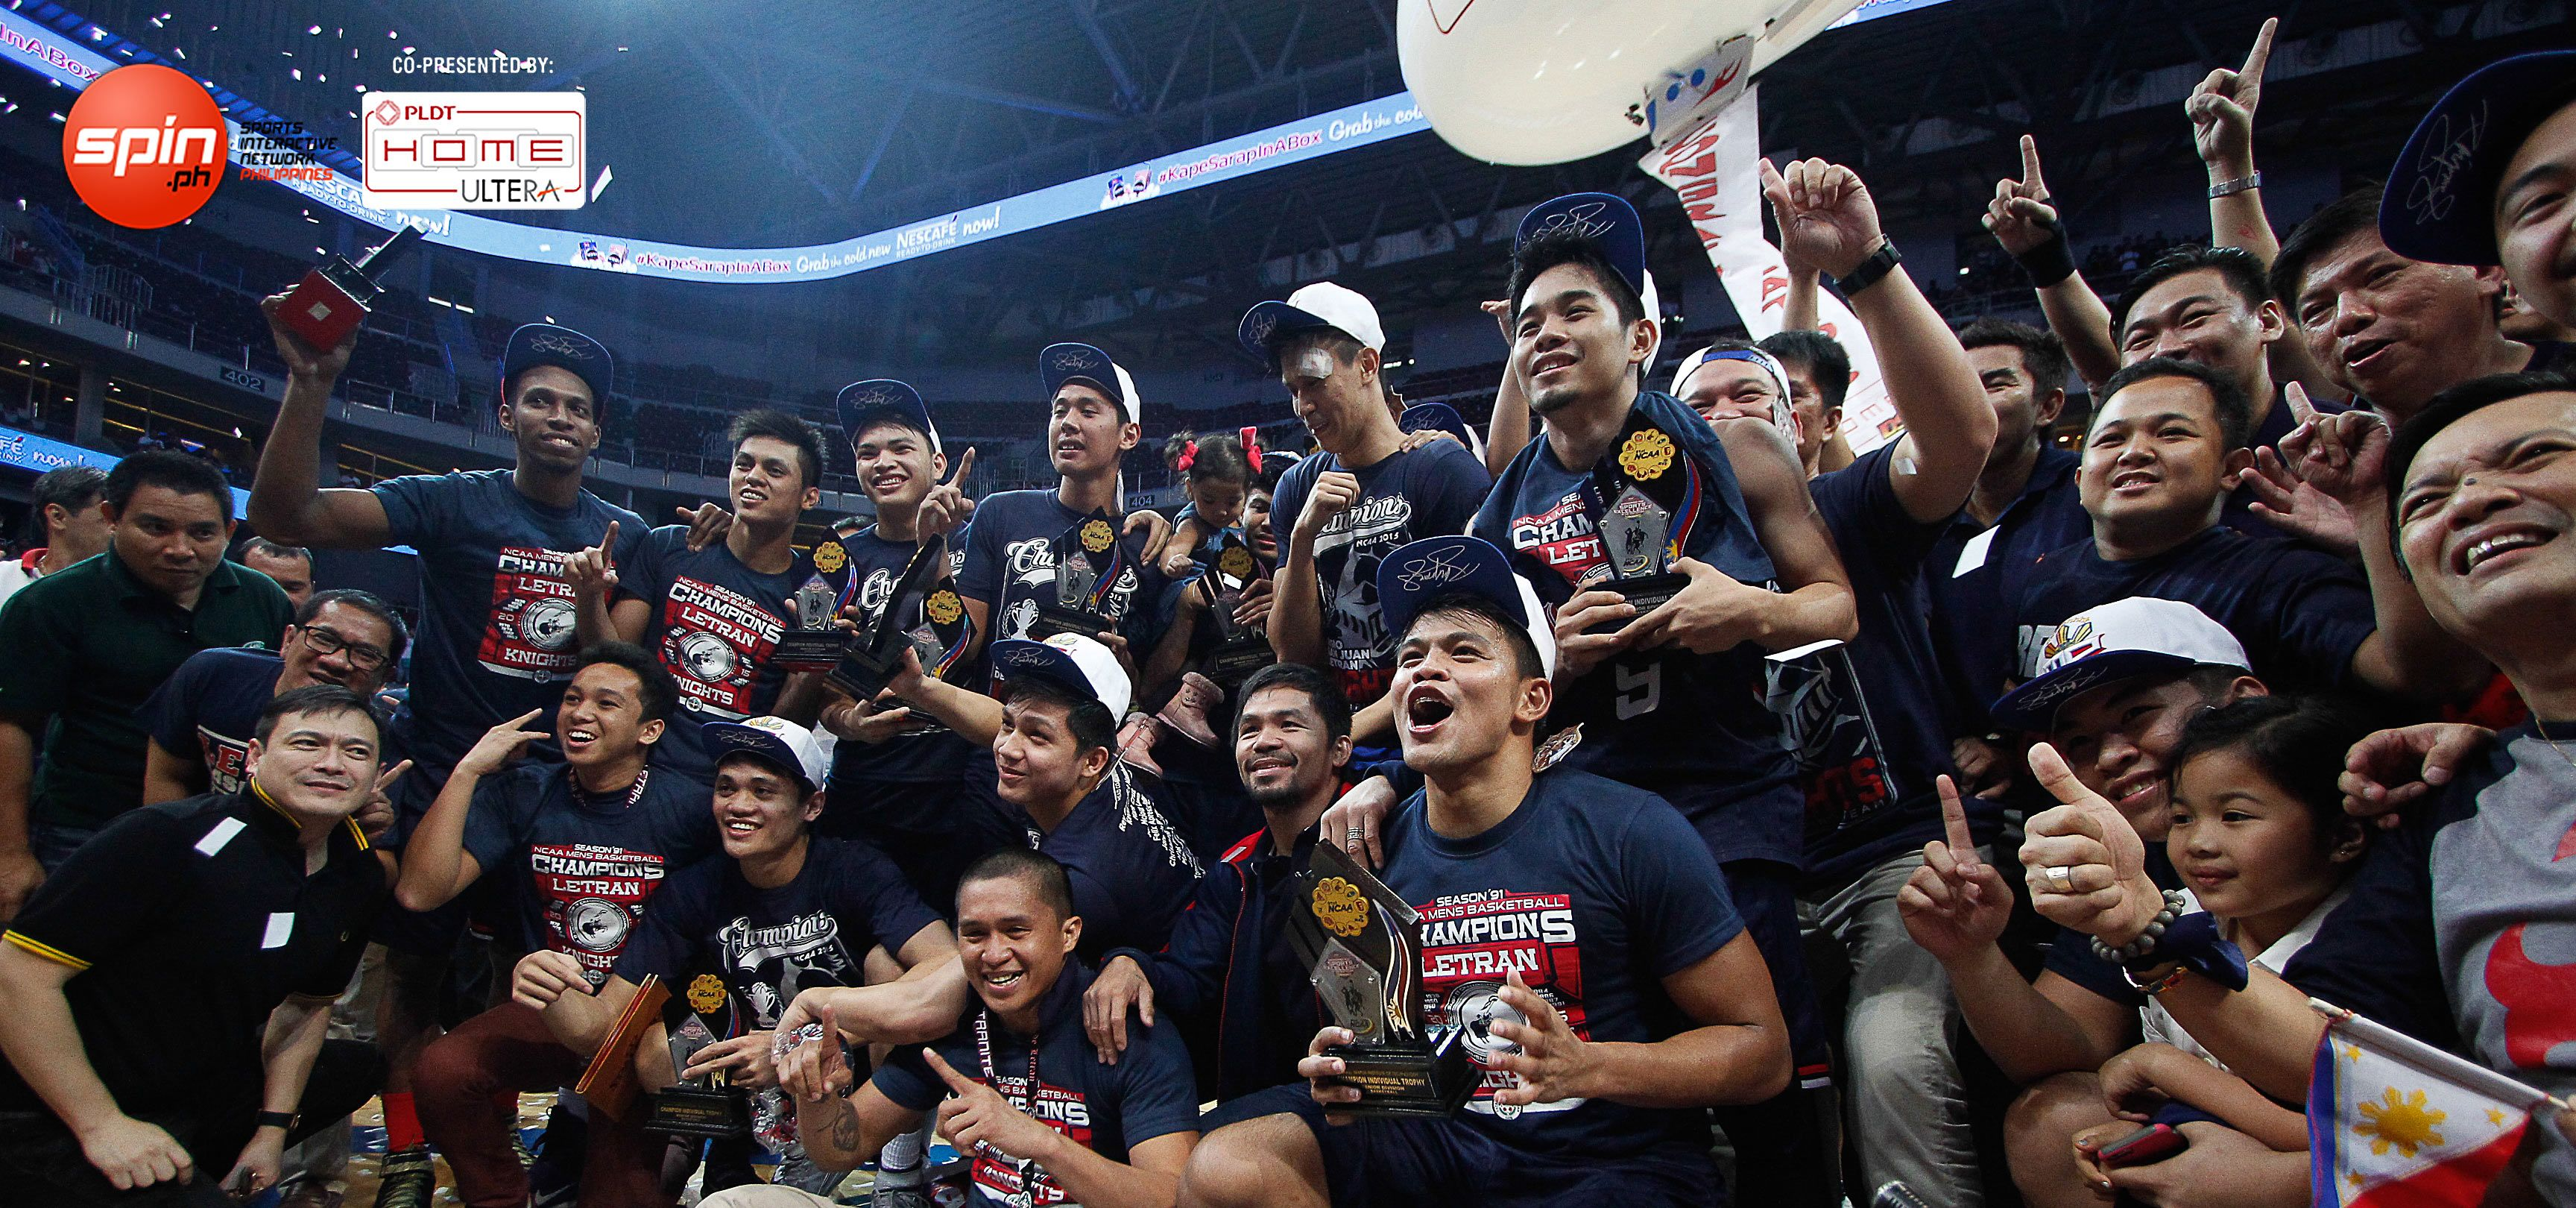 <em>Spin.ph</em> Top Ten Sports Heroes of 2015: Letran Knights, the Cinderella team